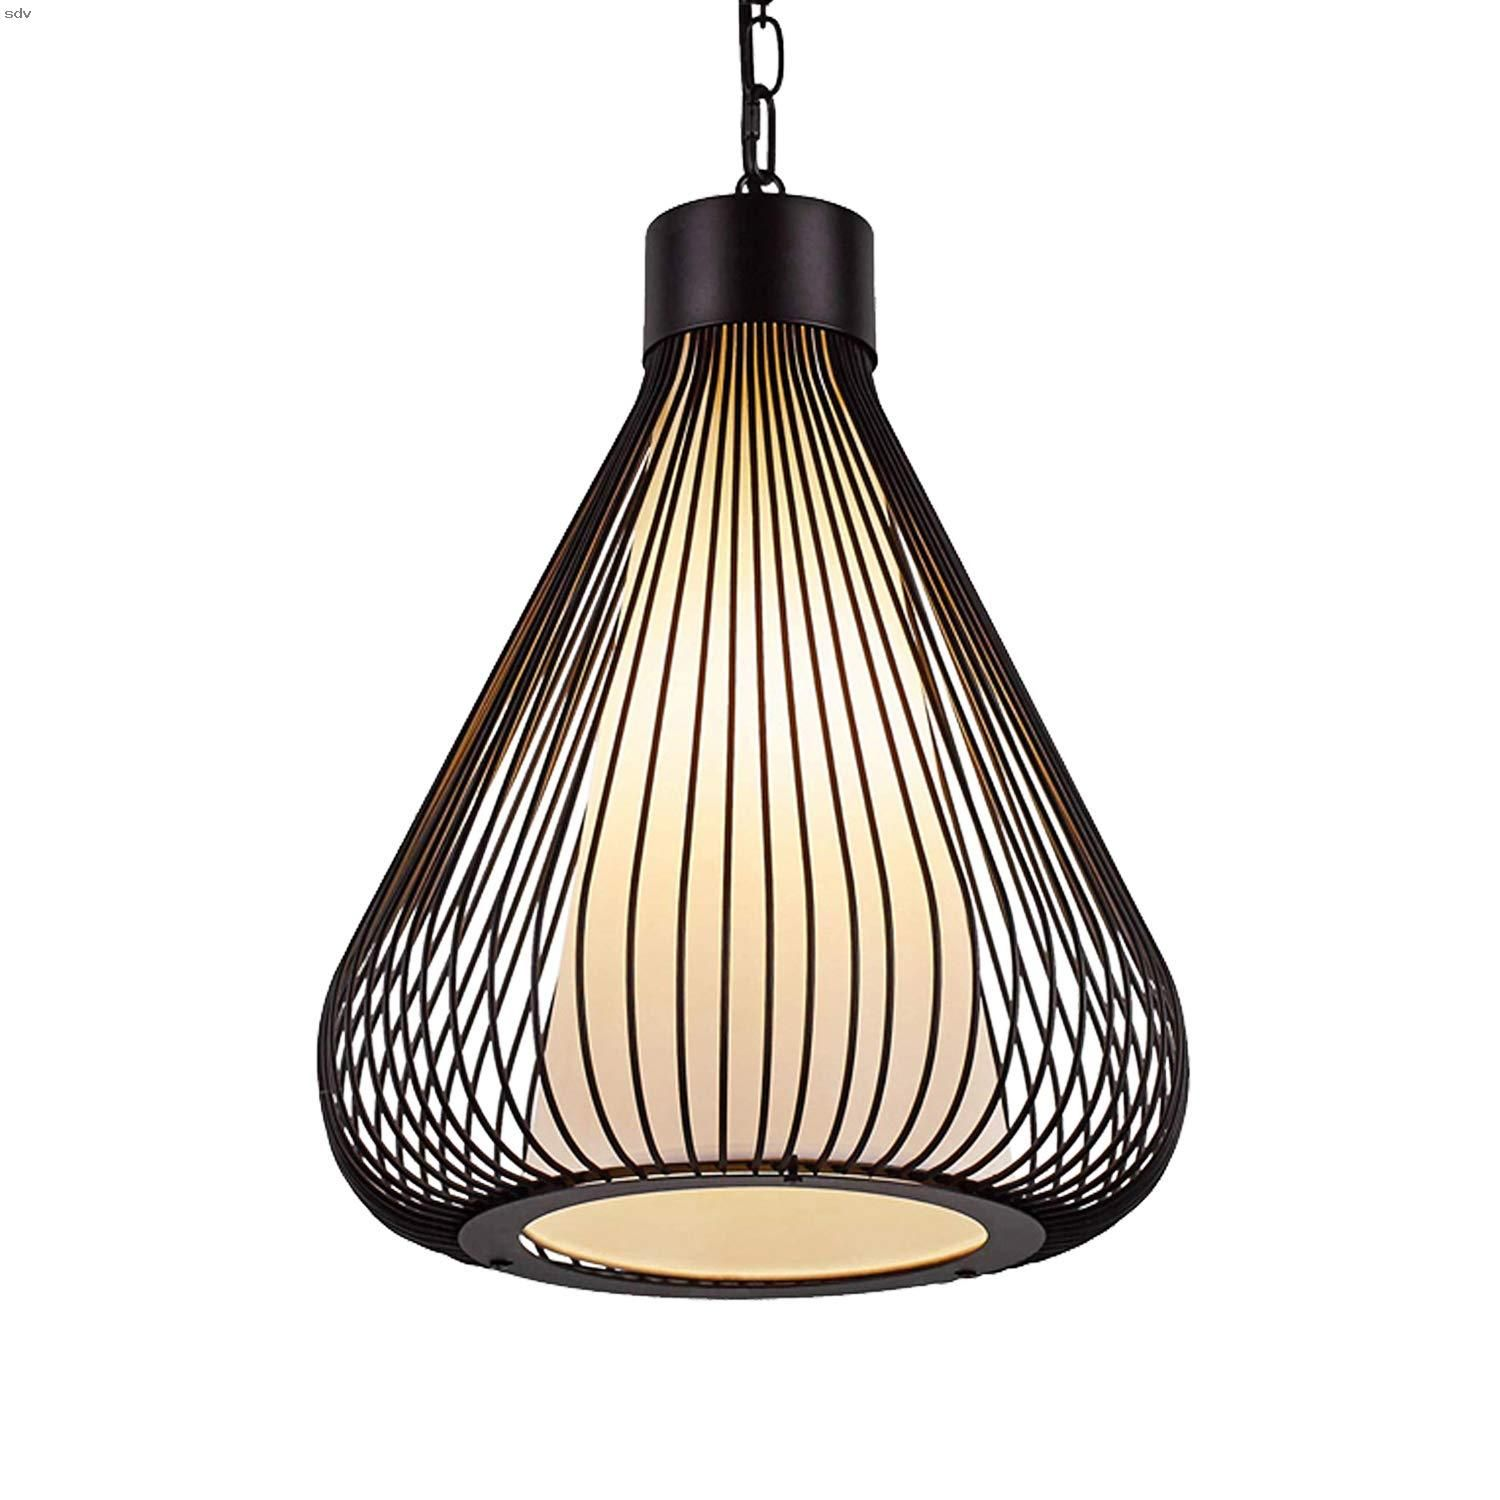 Aidos Modern Wrought Iron Pendant Lighting Industrial Black Metal Lampshade Light Fixtures For Kitchen Island And Bedroom Hanging Lamp With Adjustable Chain